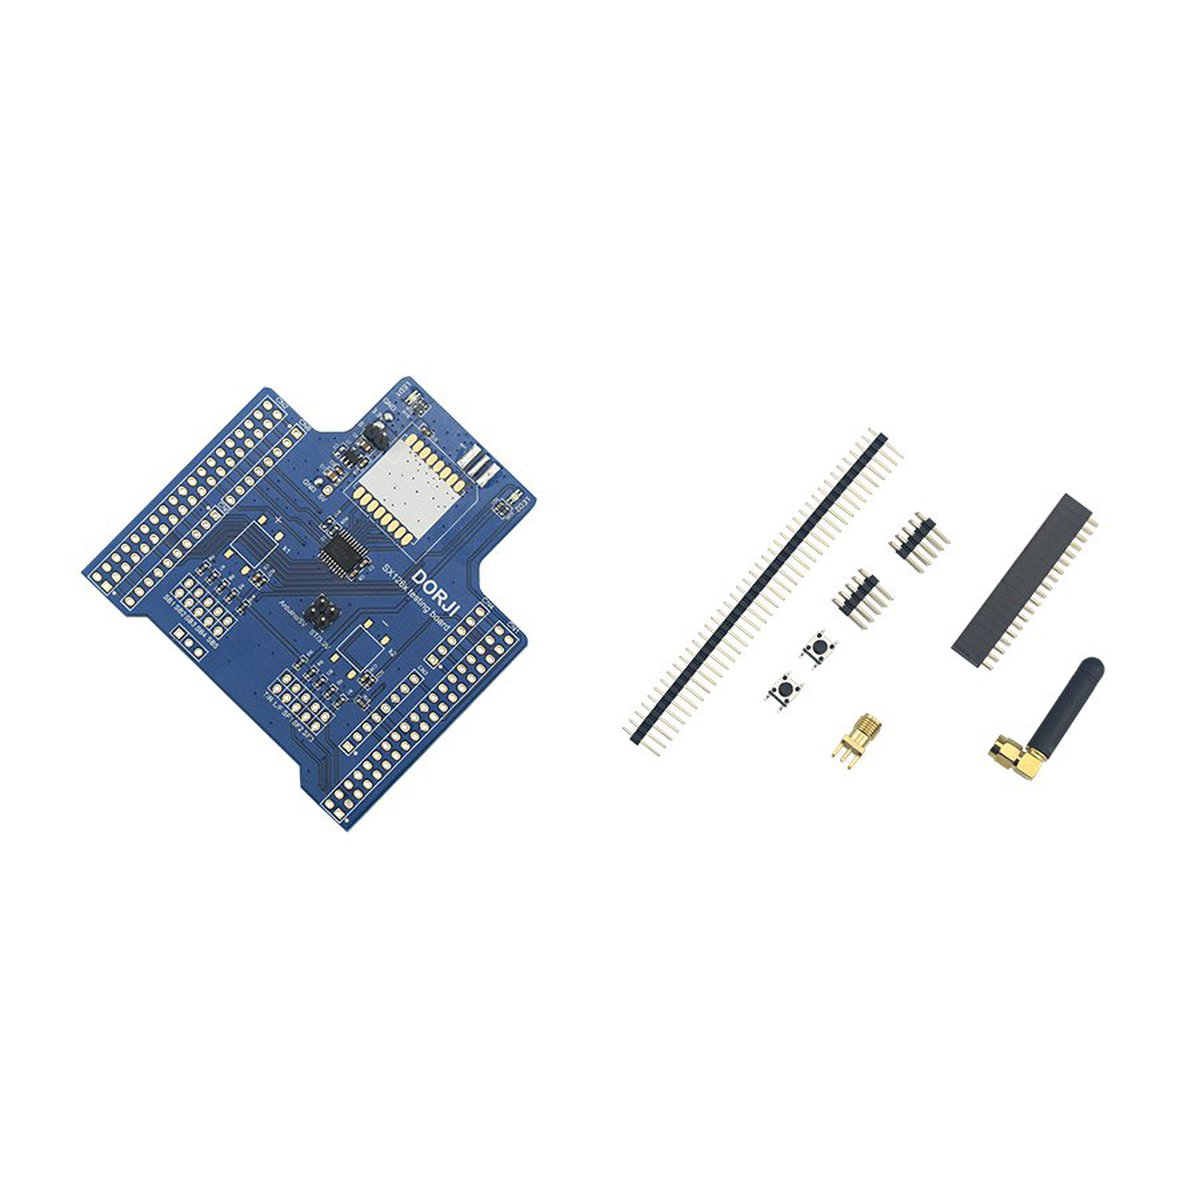 sx1262 development kit for Arduino ST Nucleo